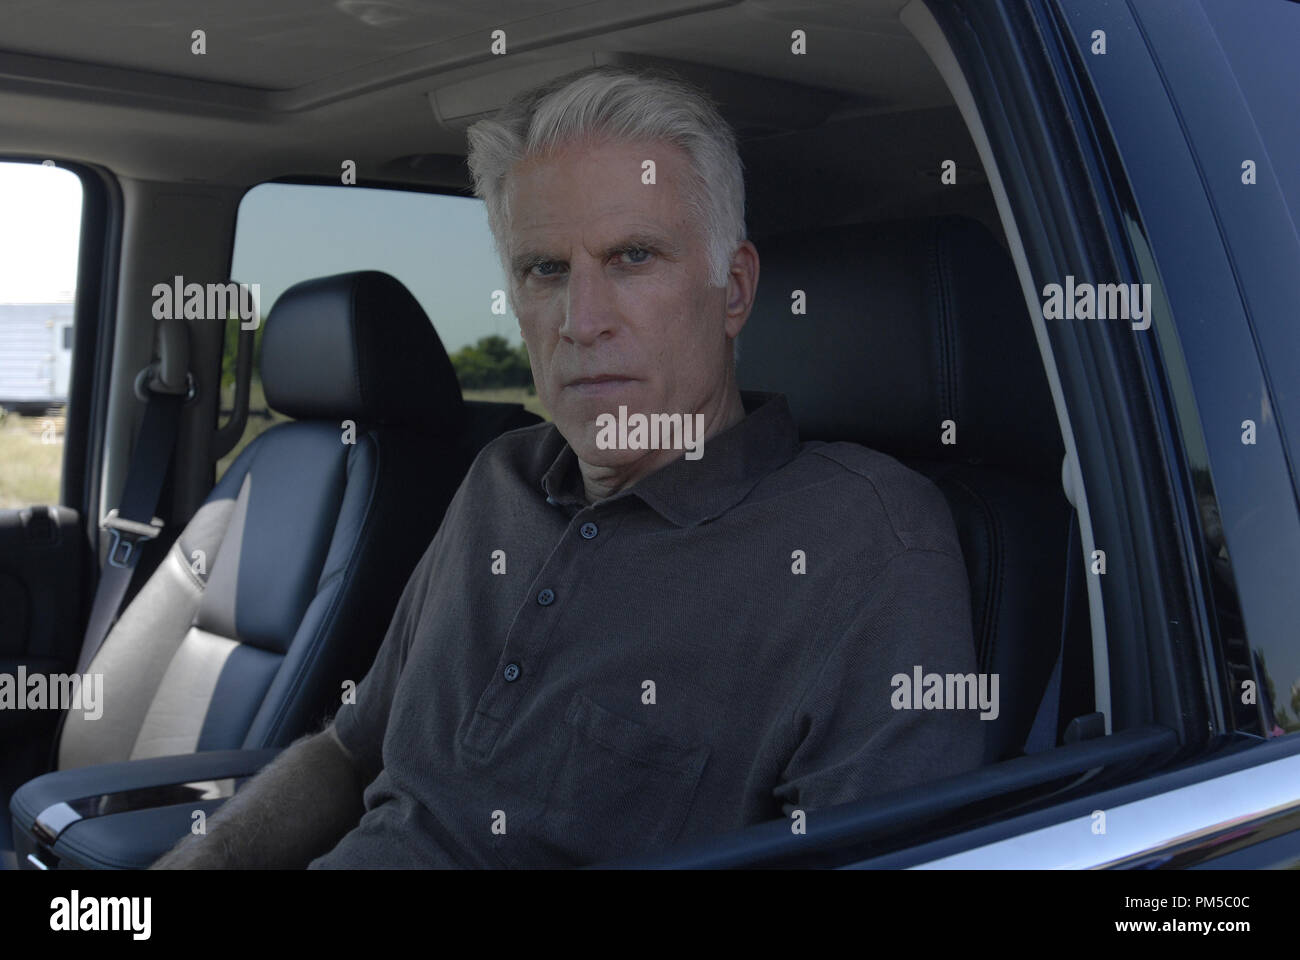 Studio Publicity Still from 'Damages' Ted Danson 2007      File Reference # 30738826THA  For Editorial Use Only -  All Rights Reserved - Stock Image